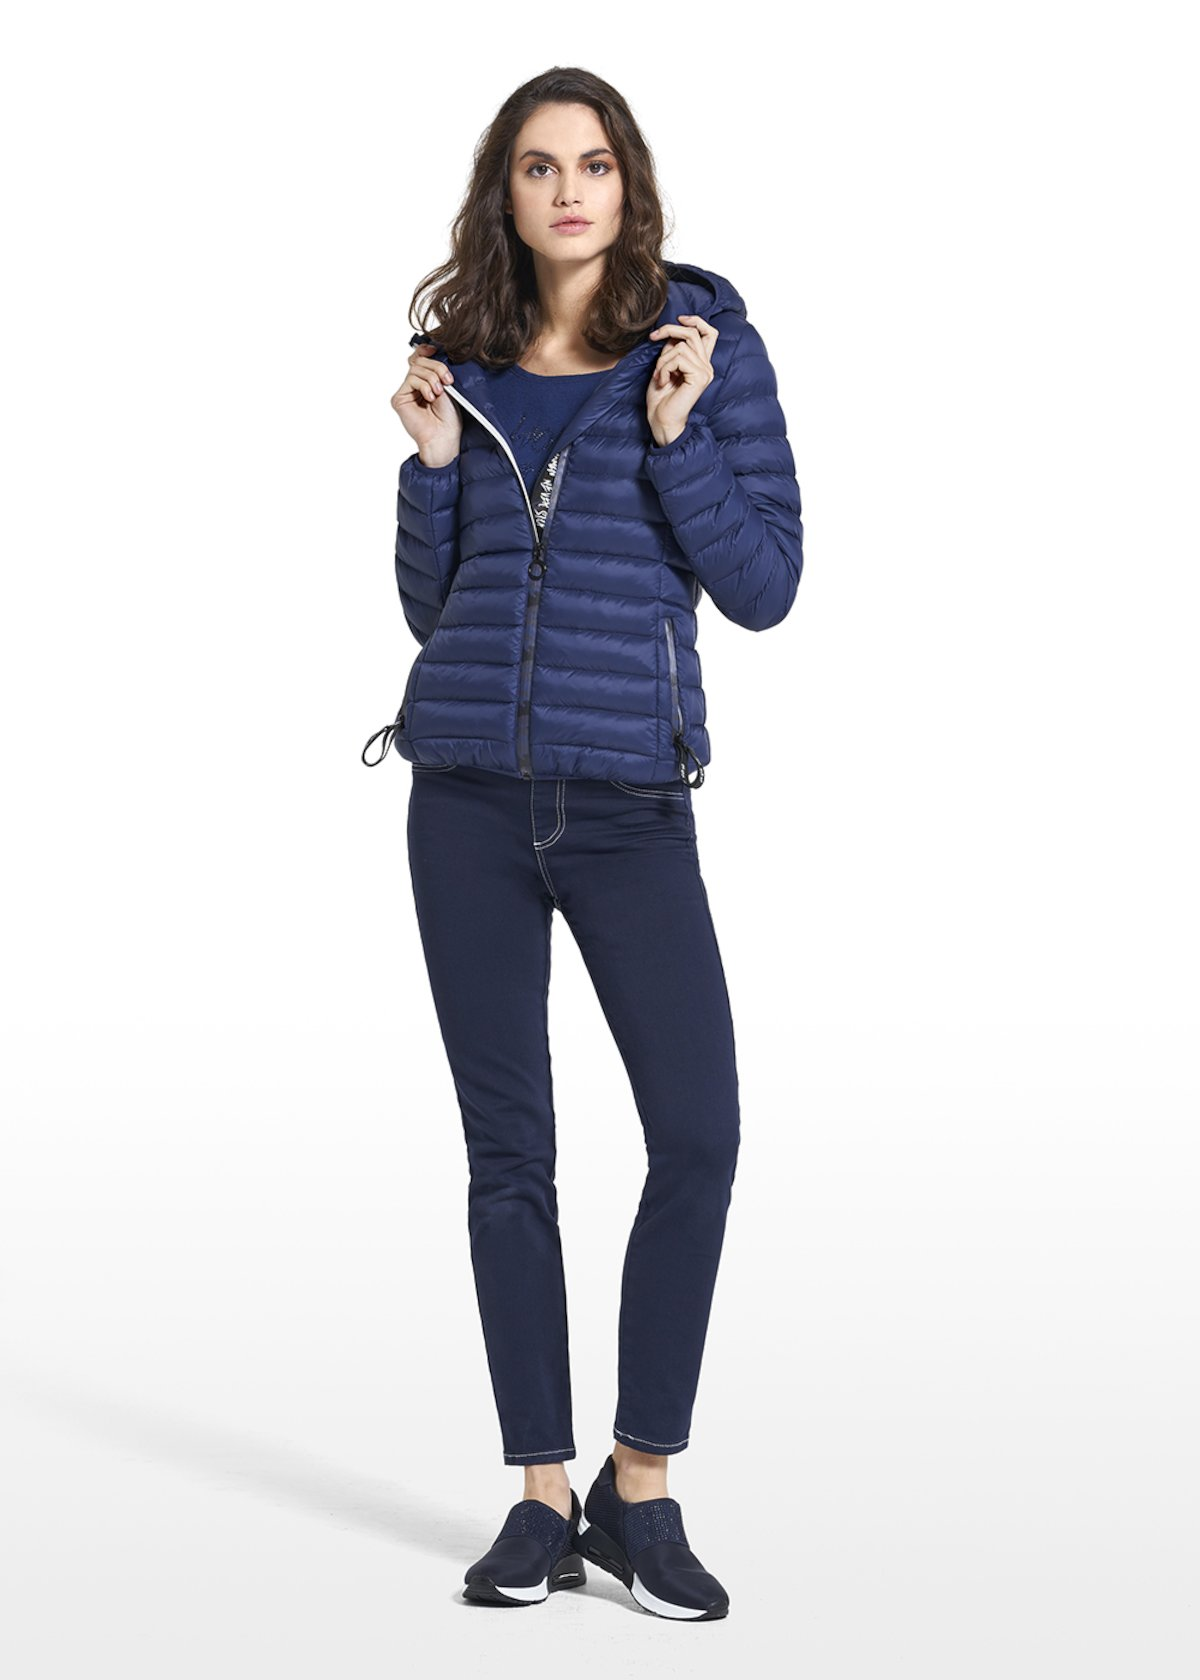 Down jacket in nylon Philis with hood and central zipper - Medium Blue - Woman - Category image